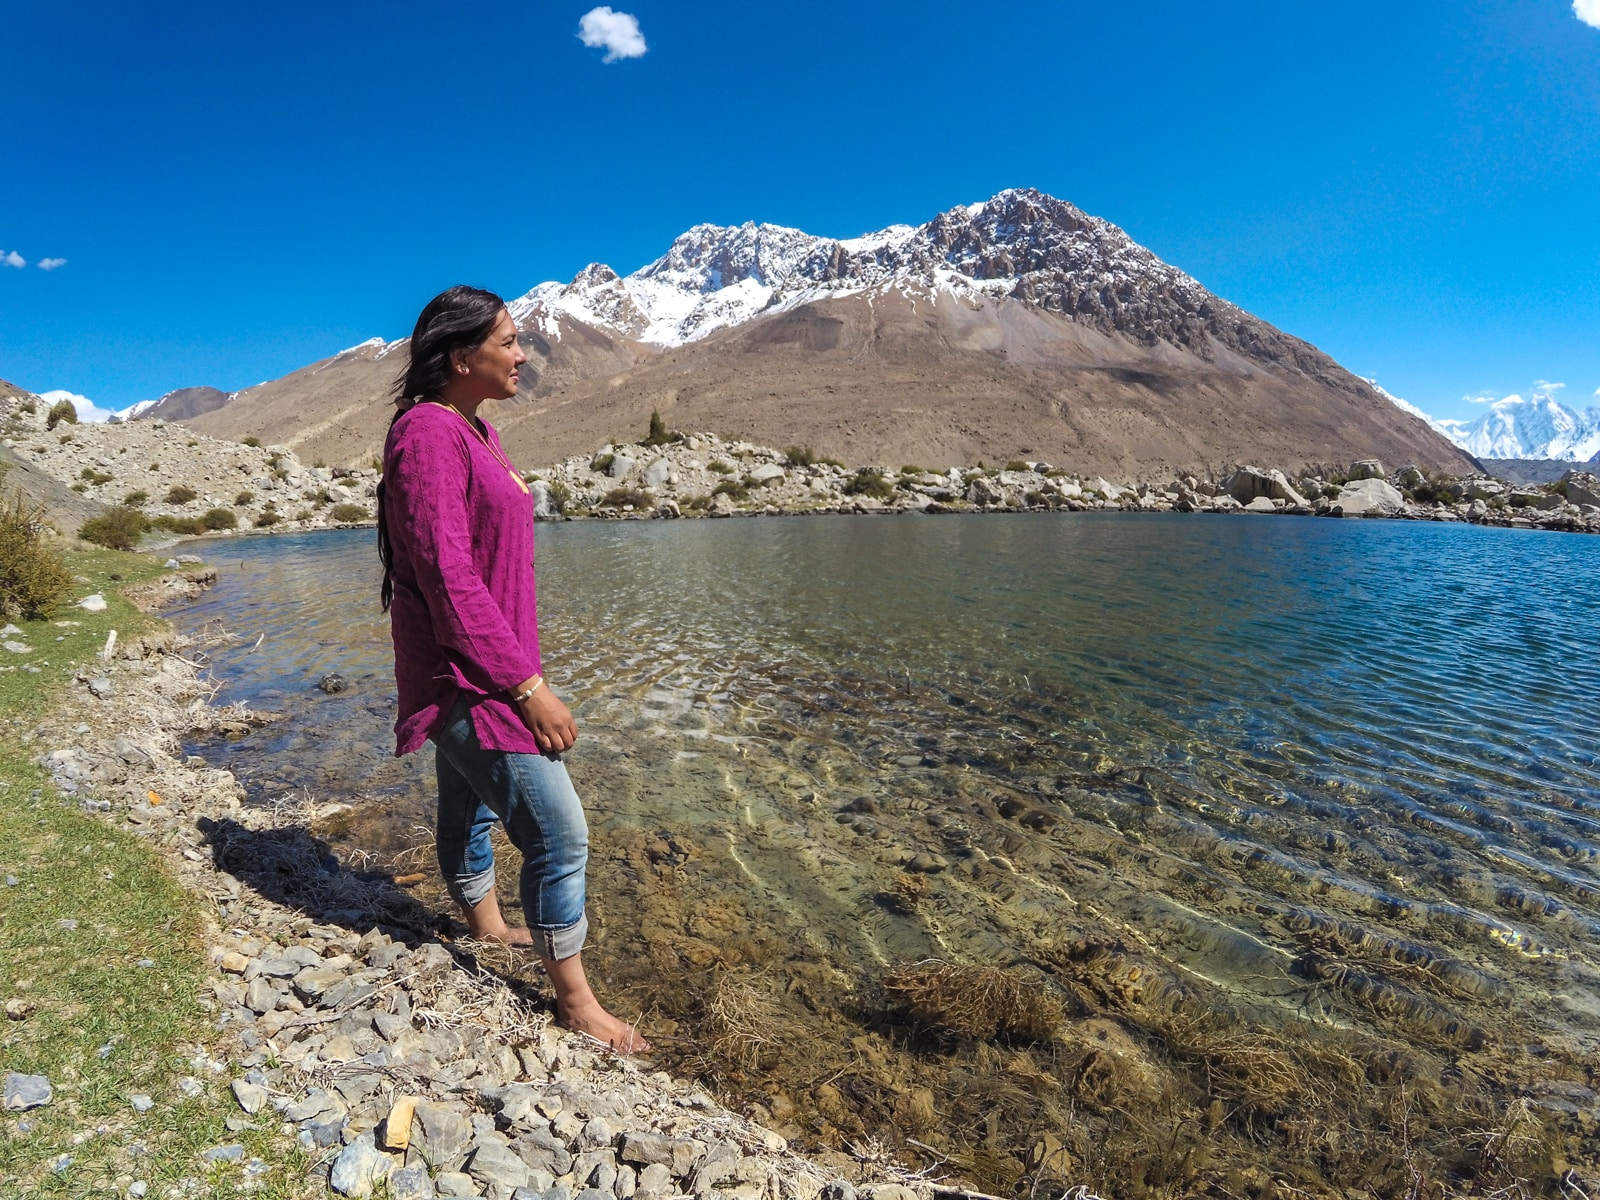 Bossy travelers interview with Aneeqa, head of Pakistan's first female-run tour company - Aneeqa at a lake in Gilgit Baltistan